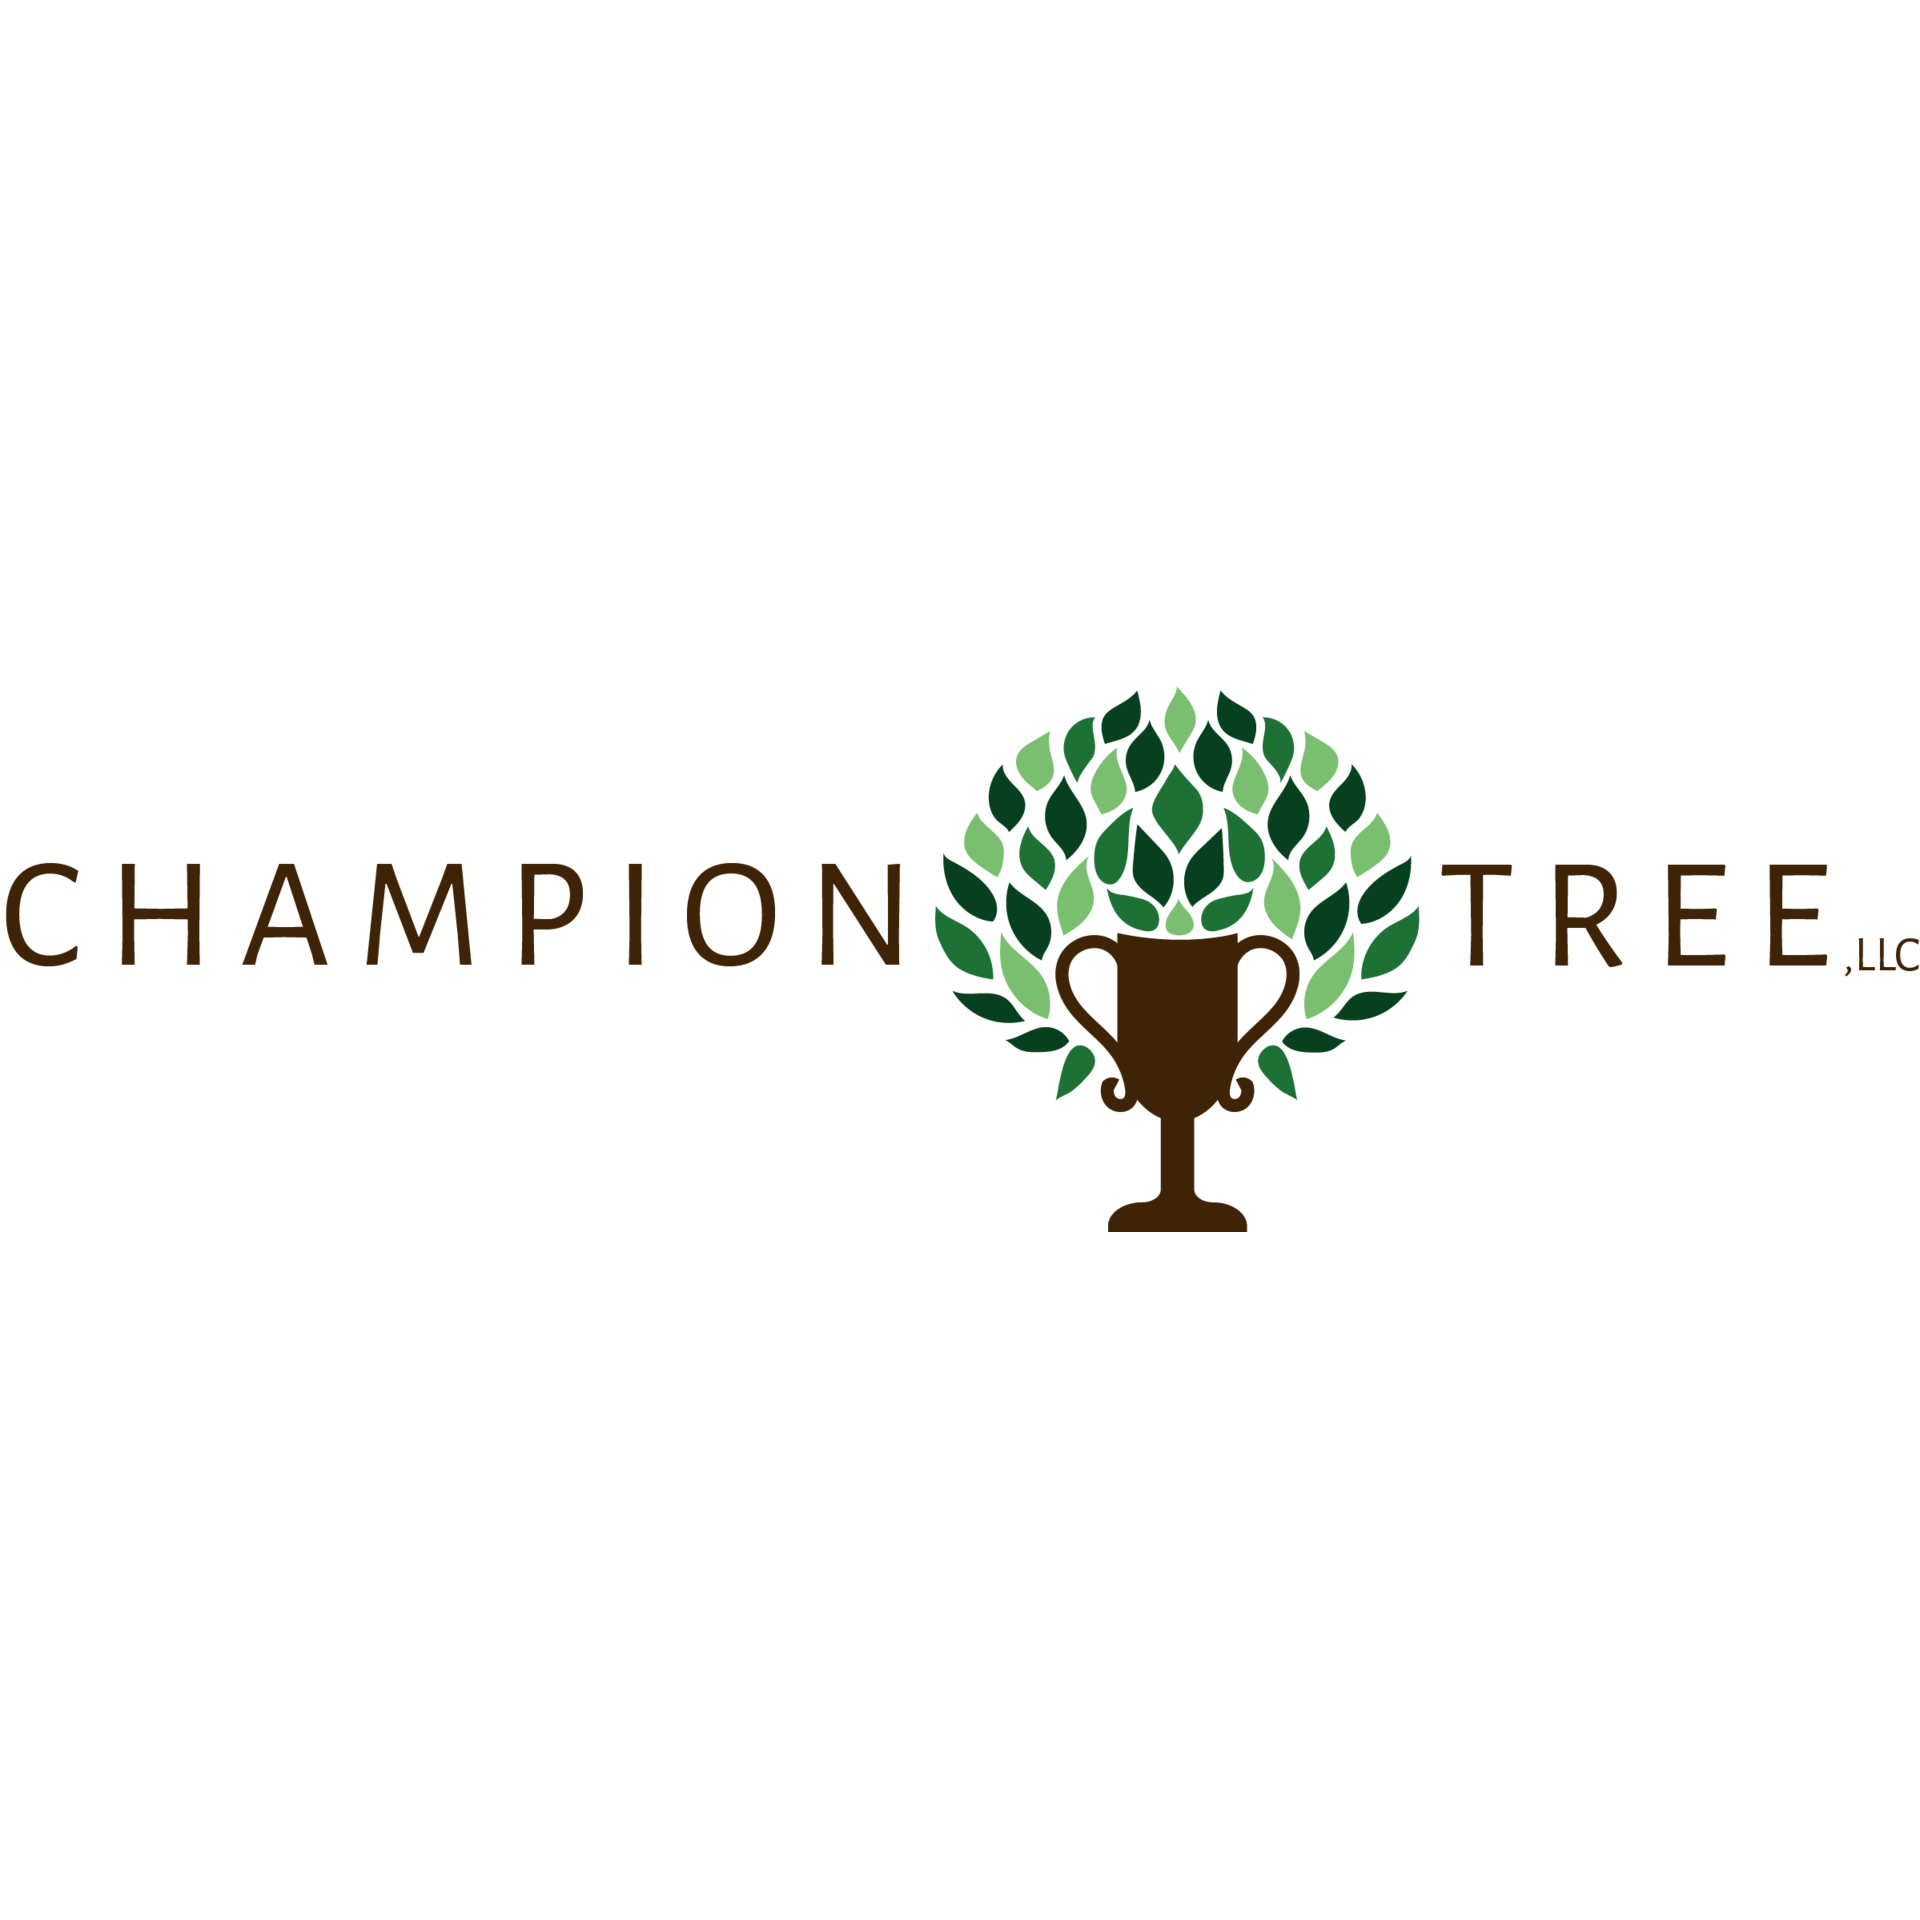 Champion Tree LLC